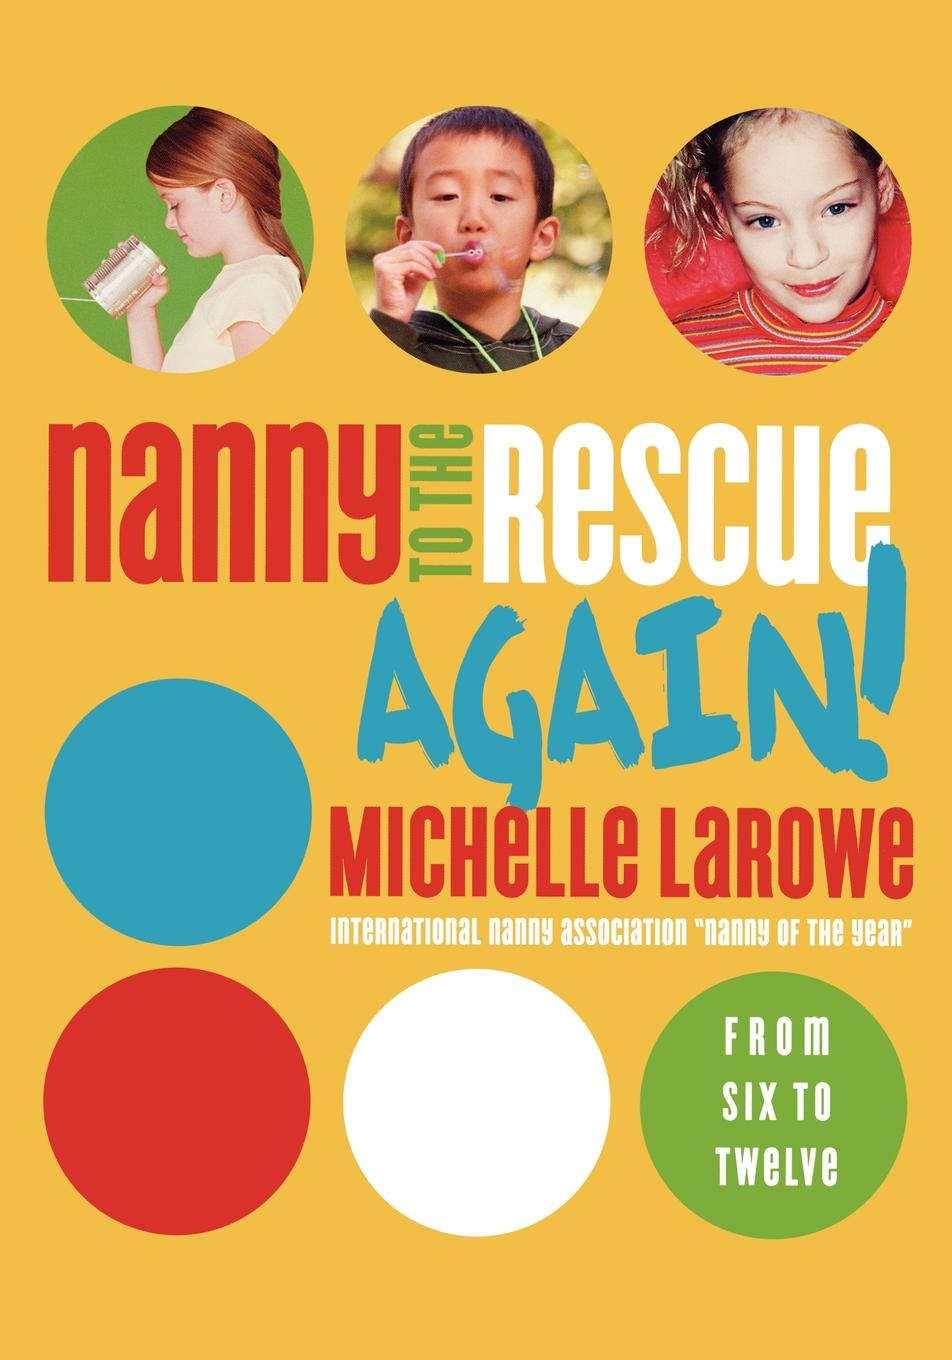 Michelle LaRowe Nanny to the Rescue Again! mrs pepperpot to the rescue